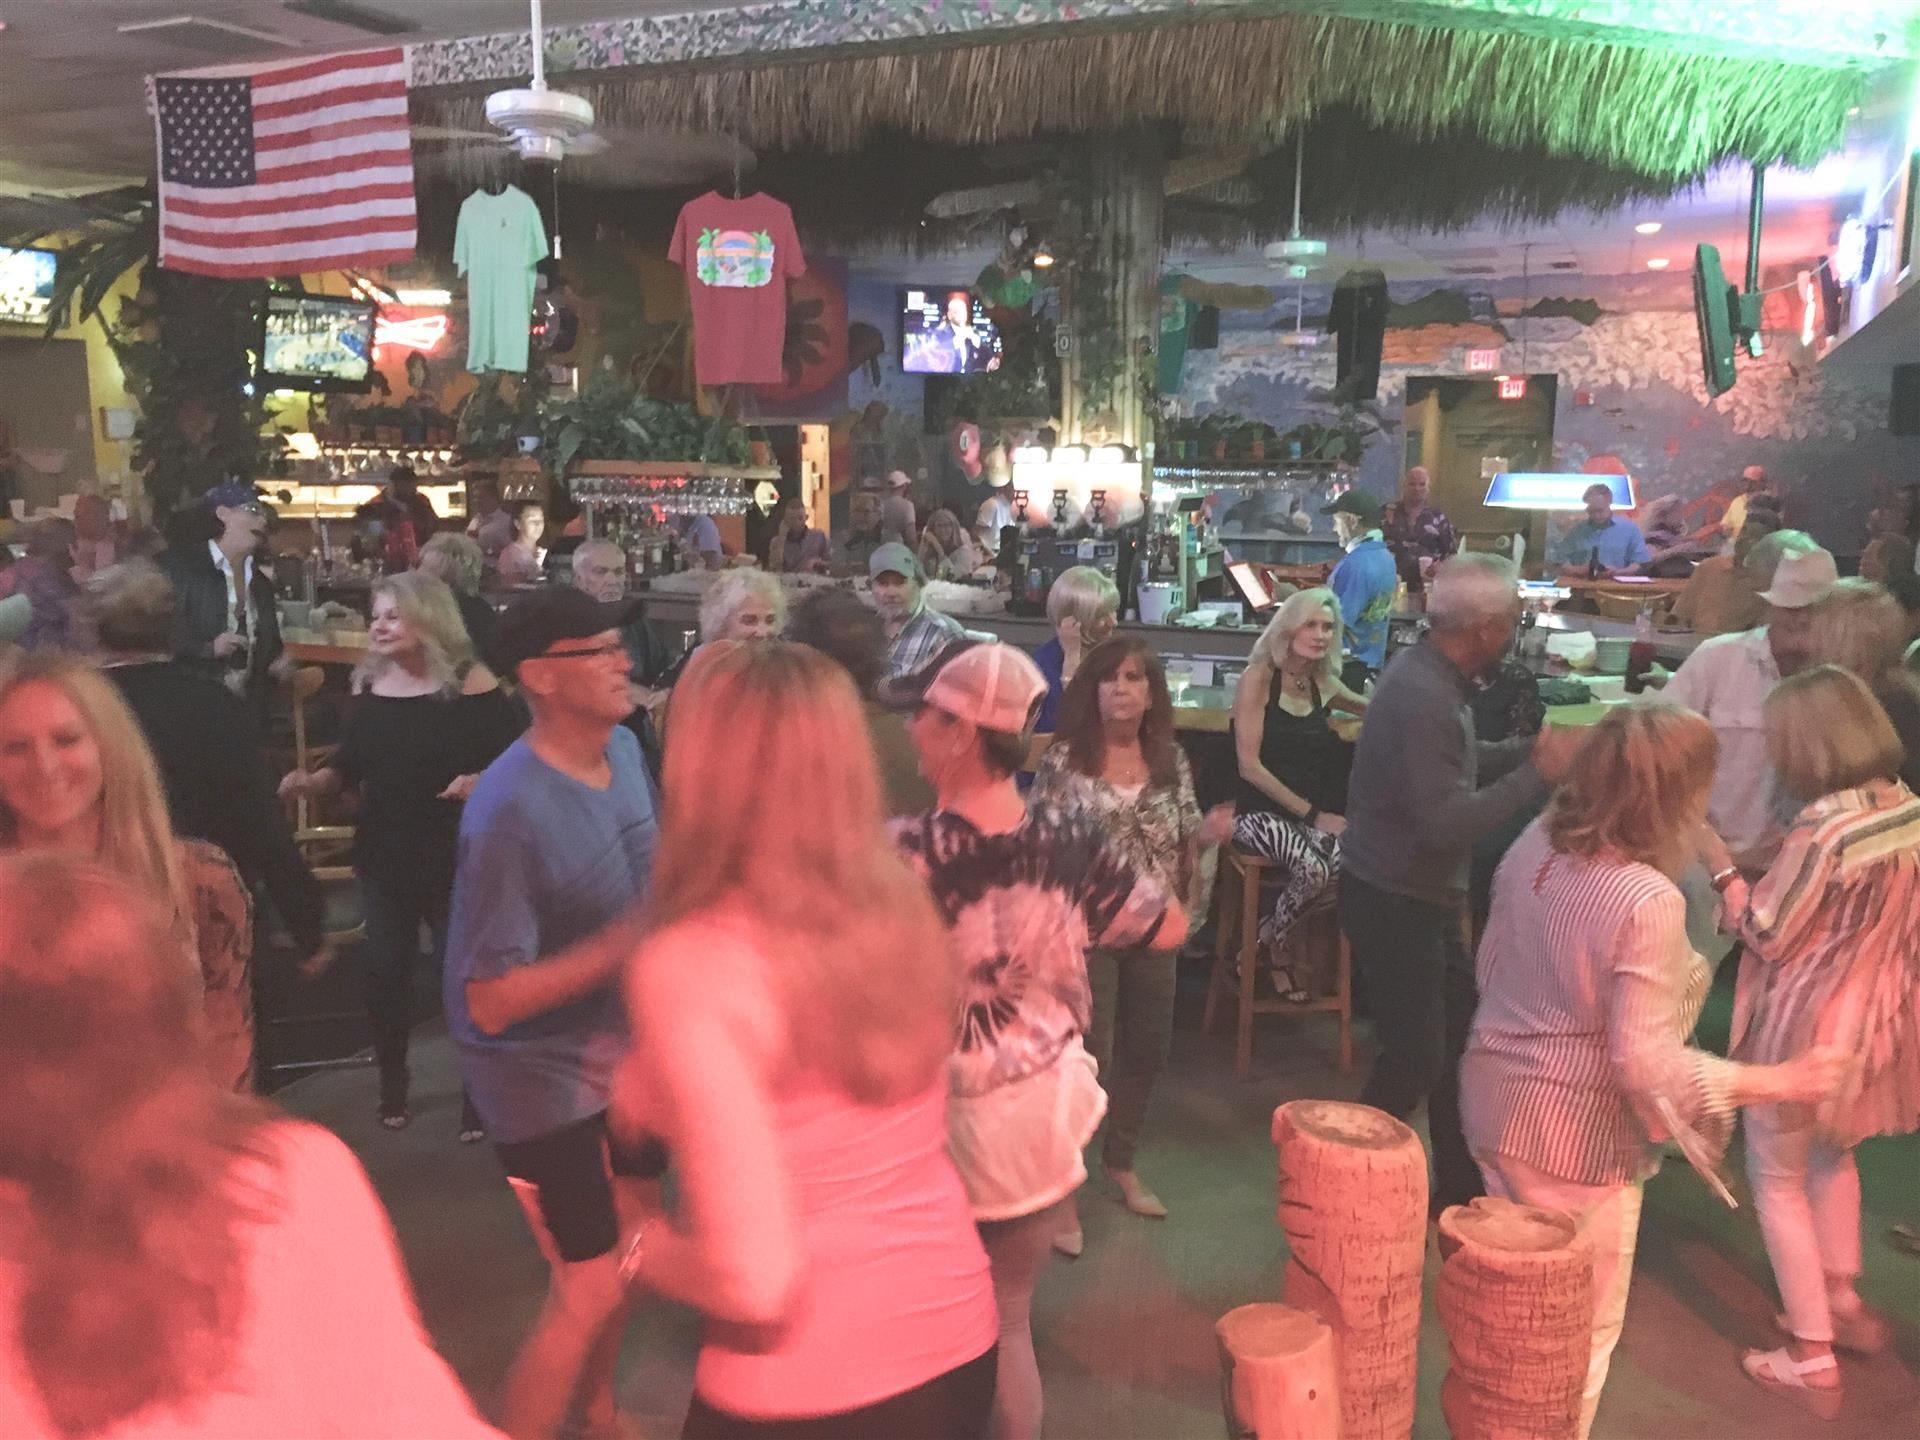 A view of the dance floor and bar area with people dancing. American flag and t shirts hanging from the ceiling